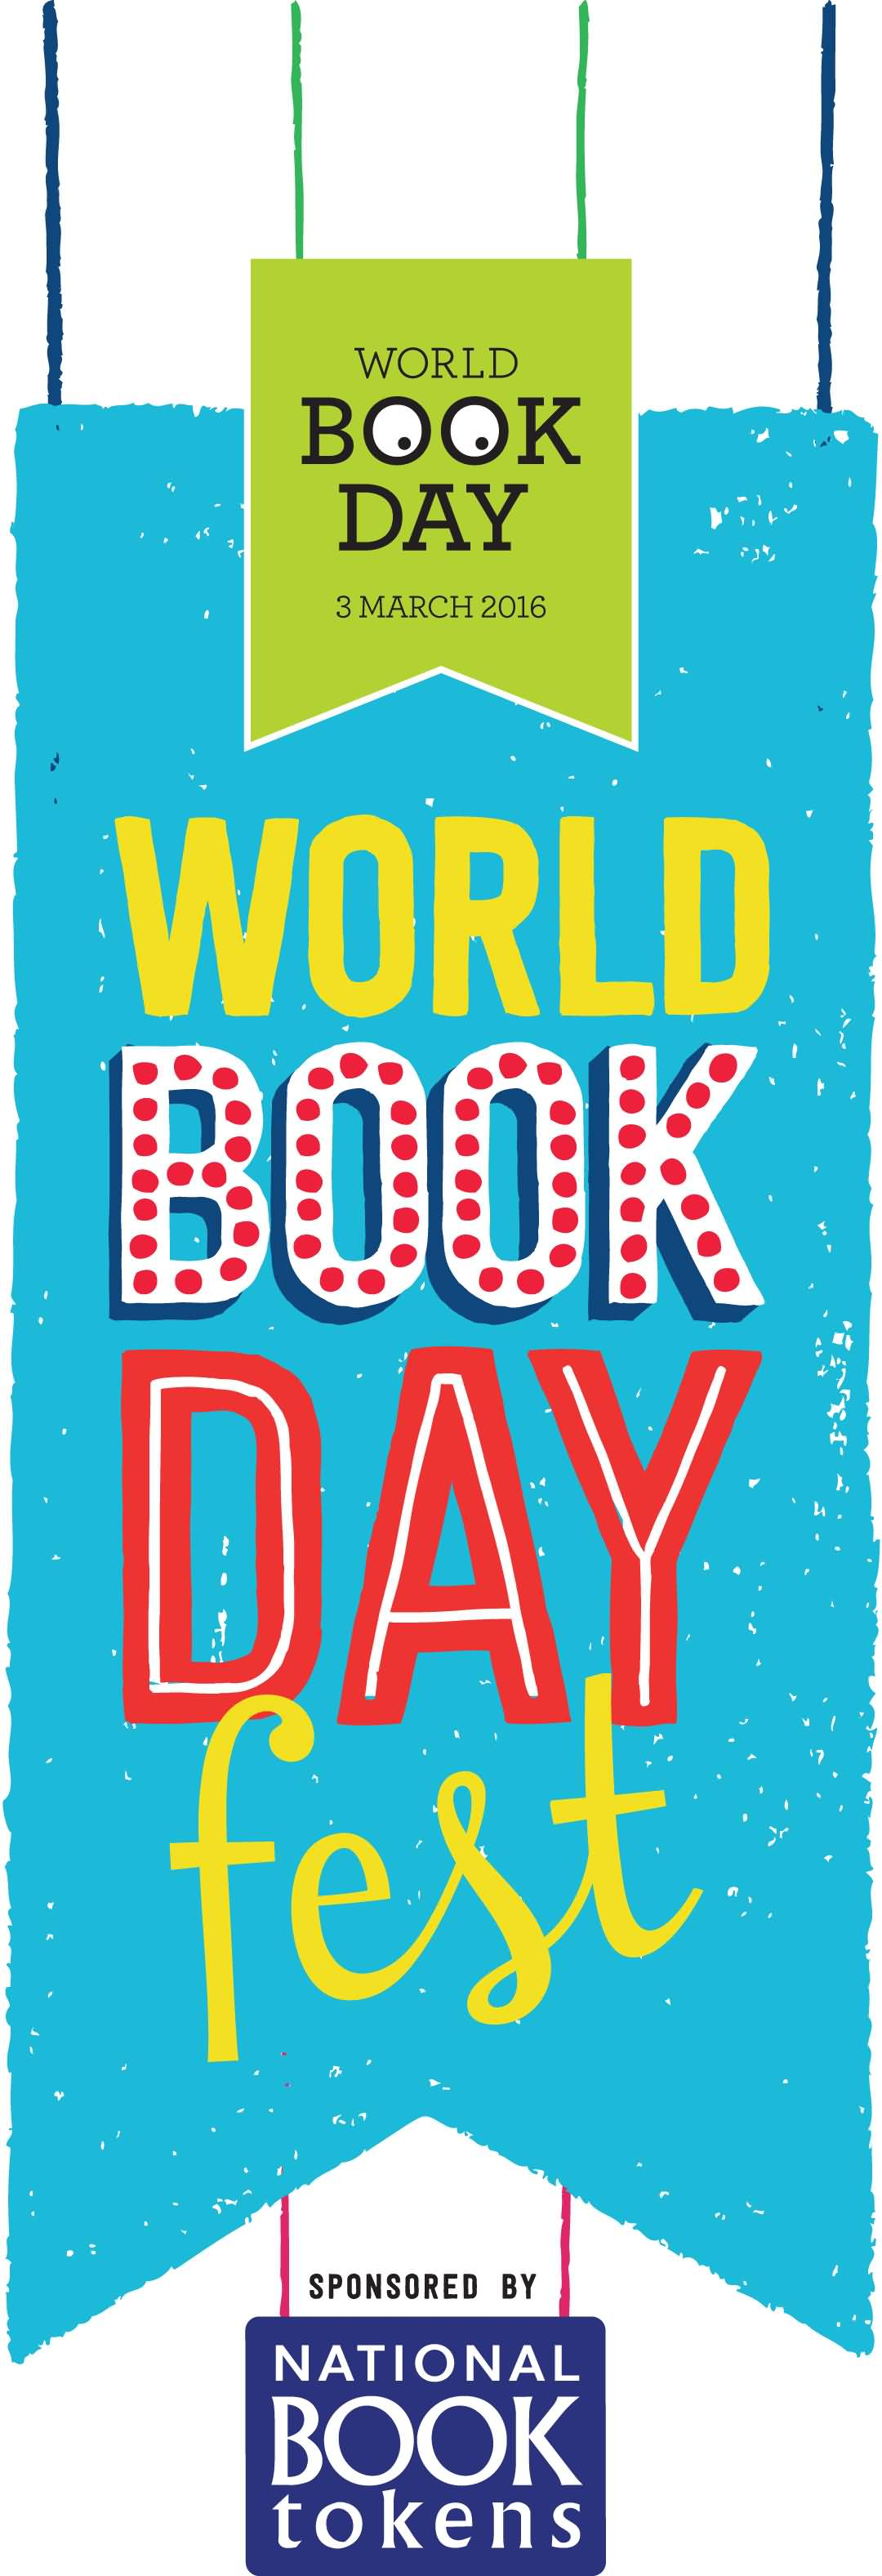 40+ Best World Book Day 2017 Pictures And Images - photo#28